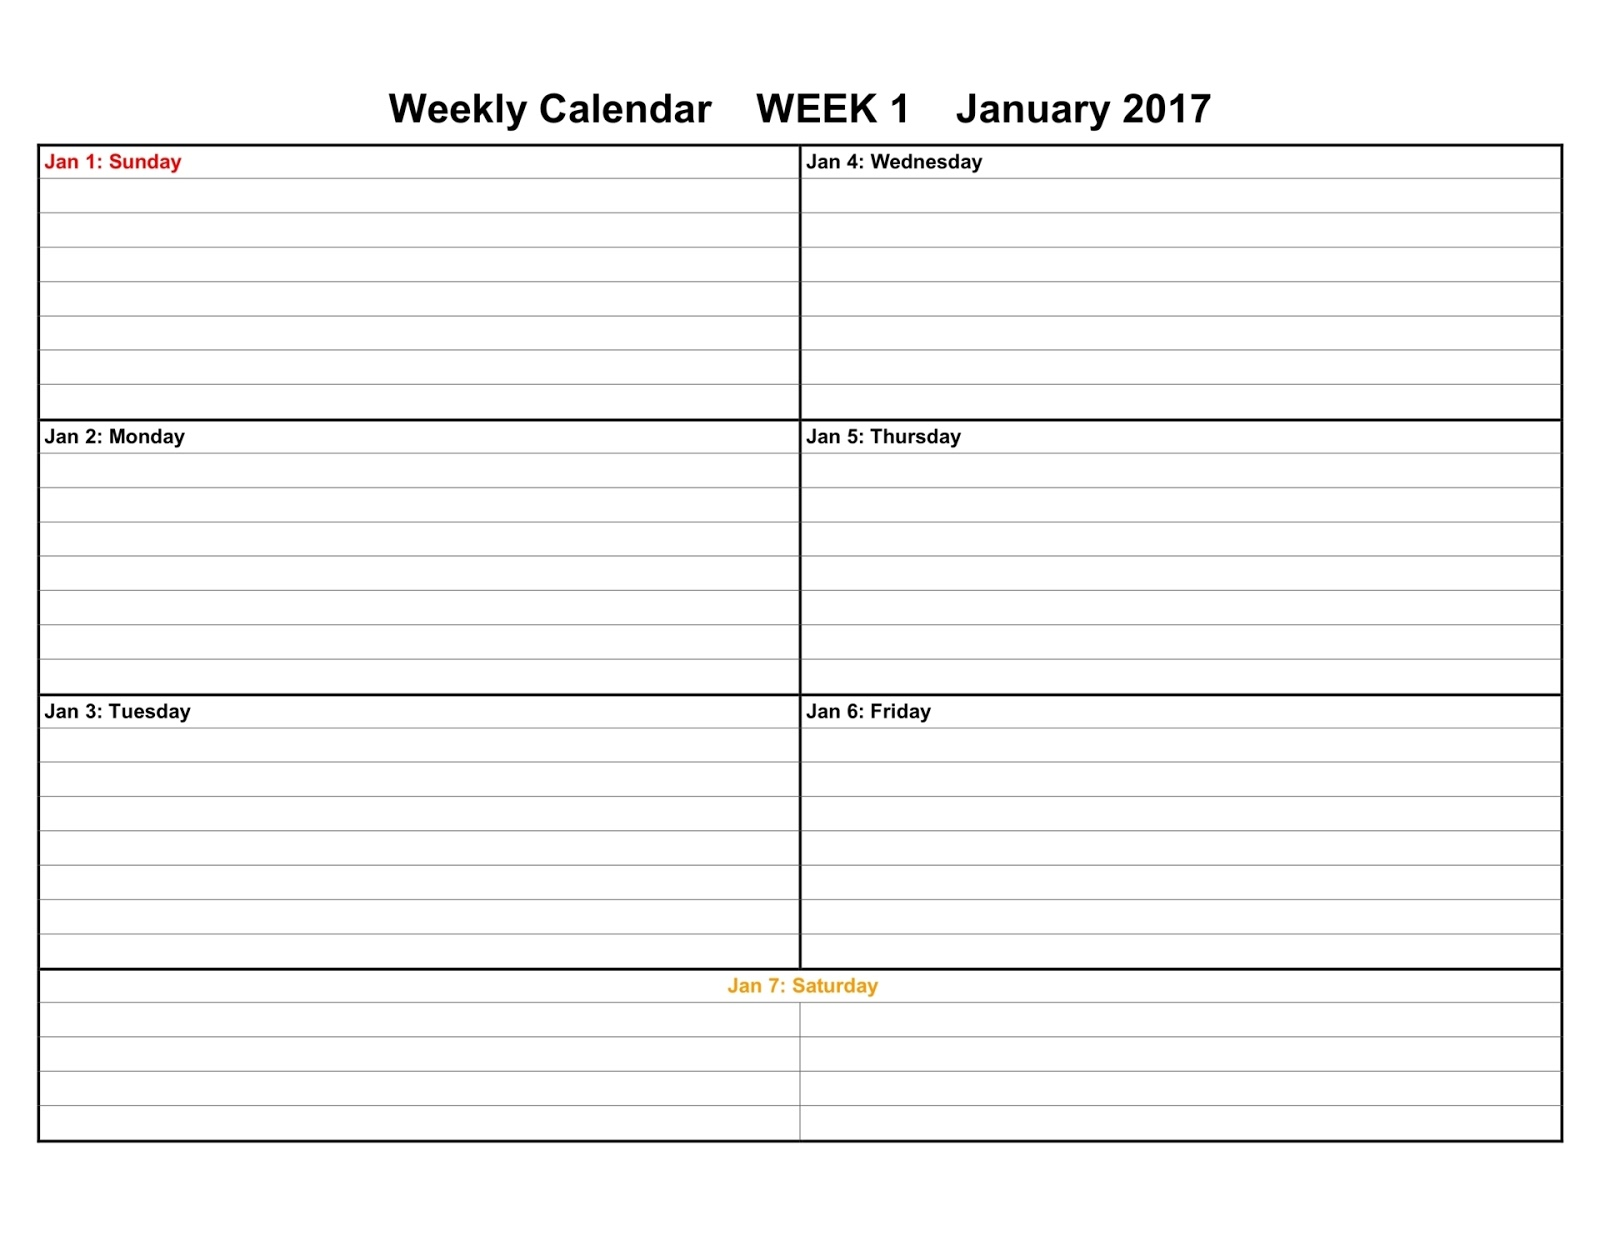 2017 weekly calendar templates for Calnedar template